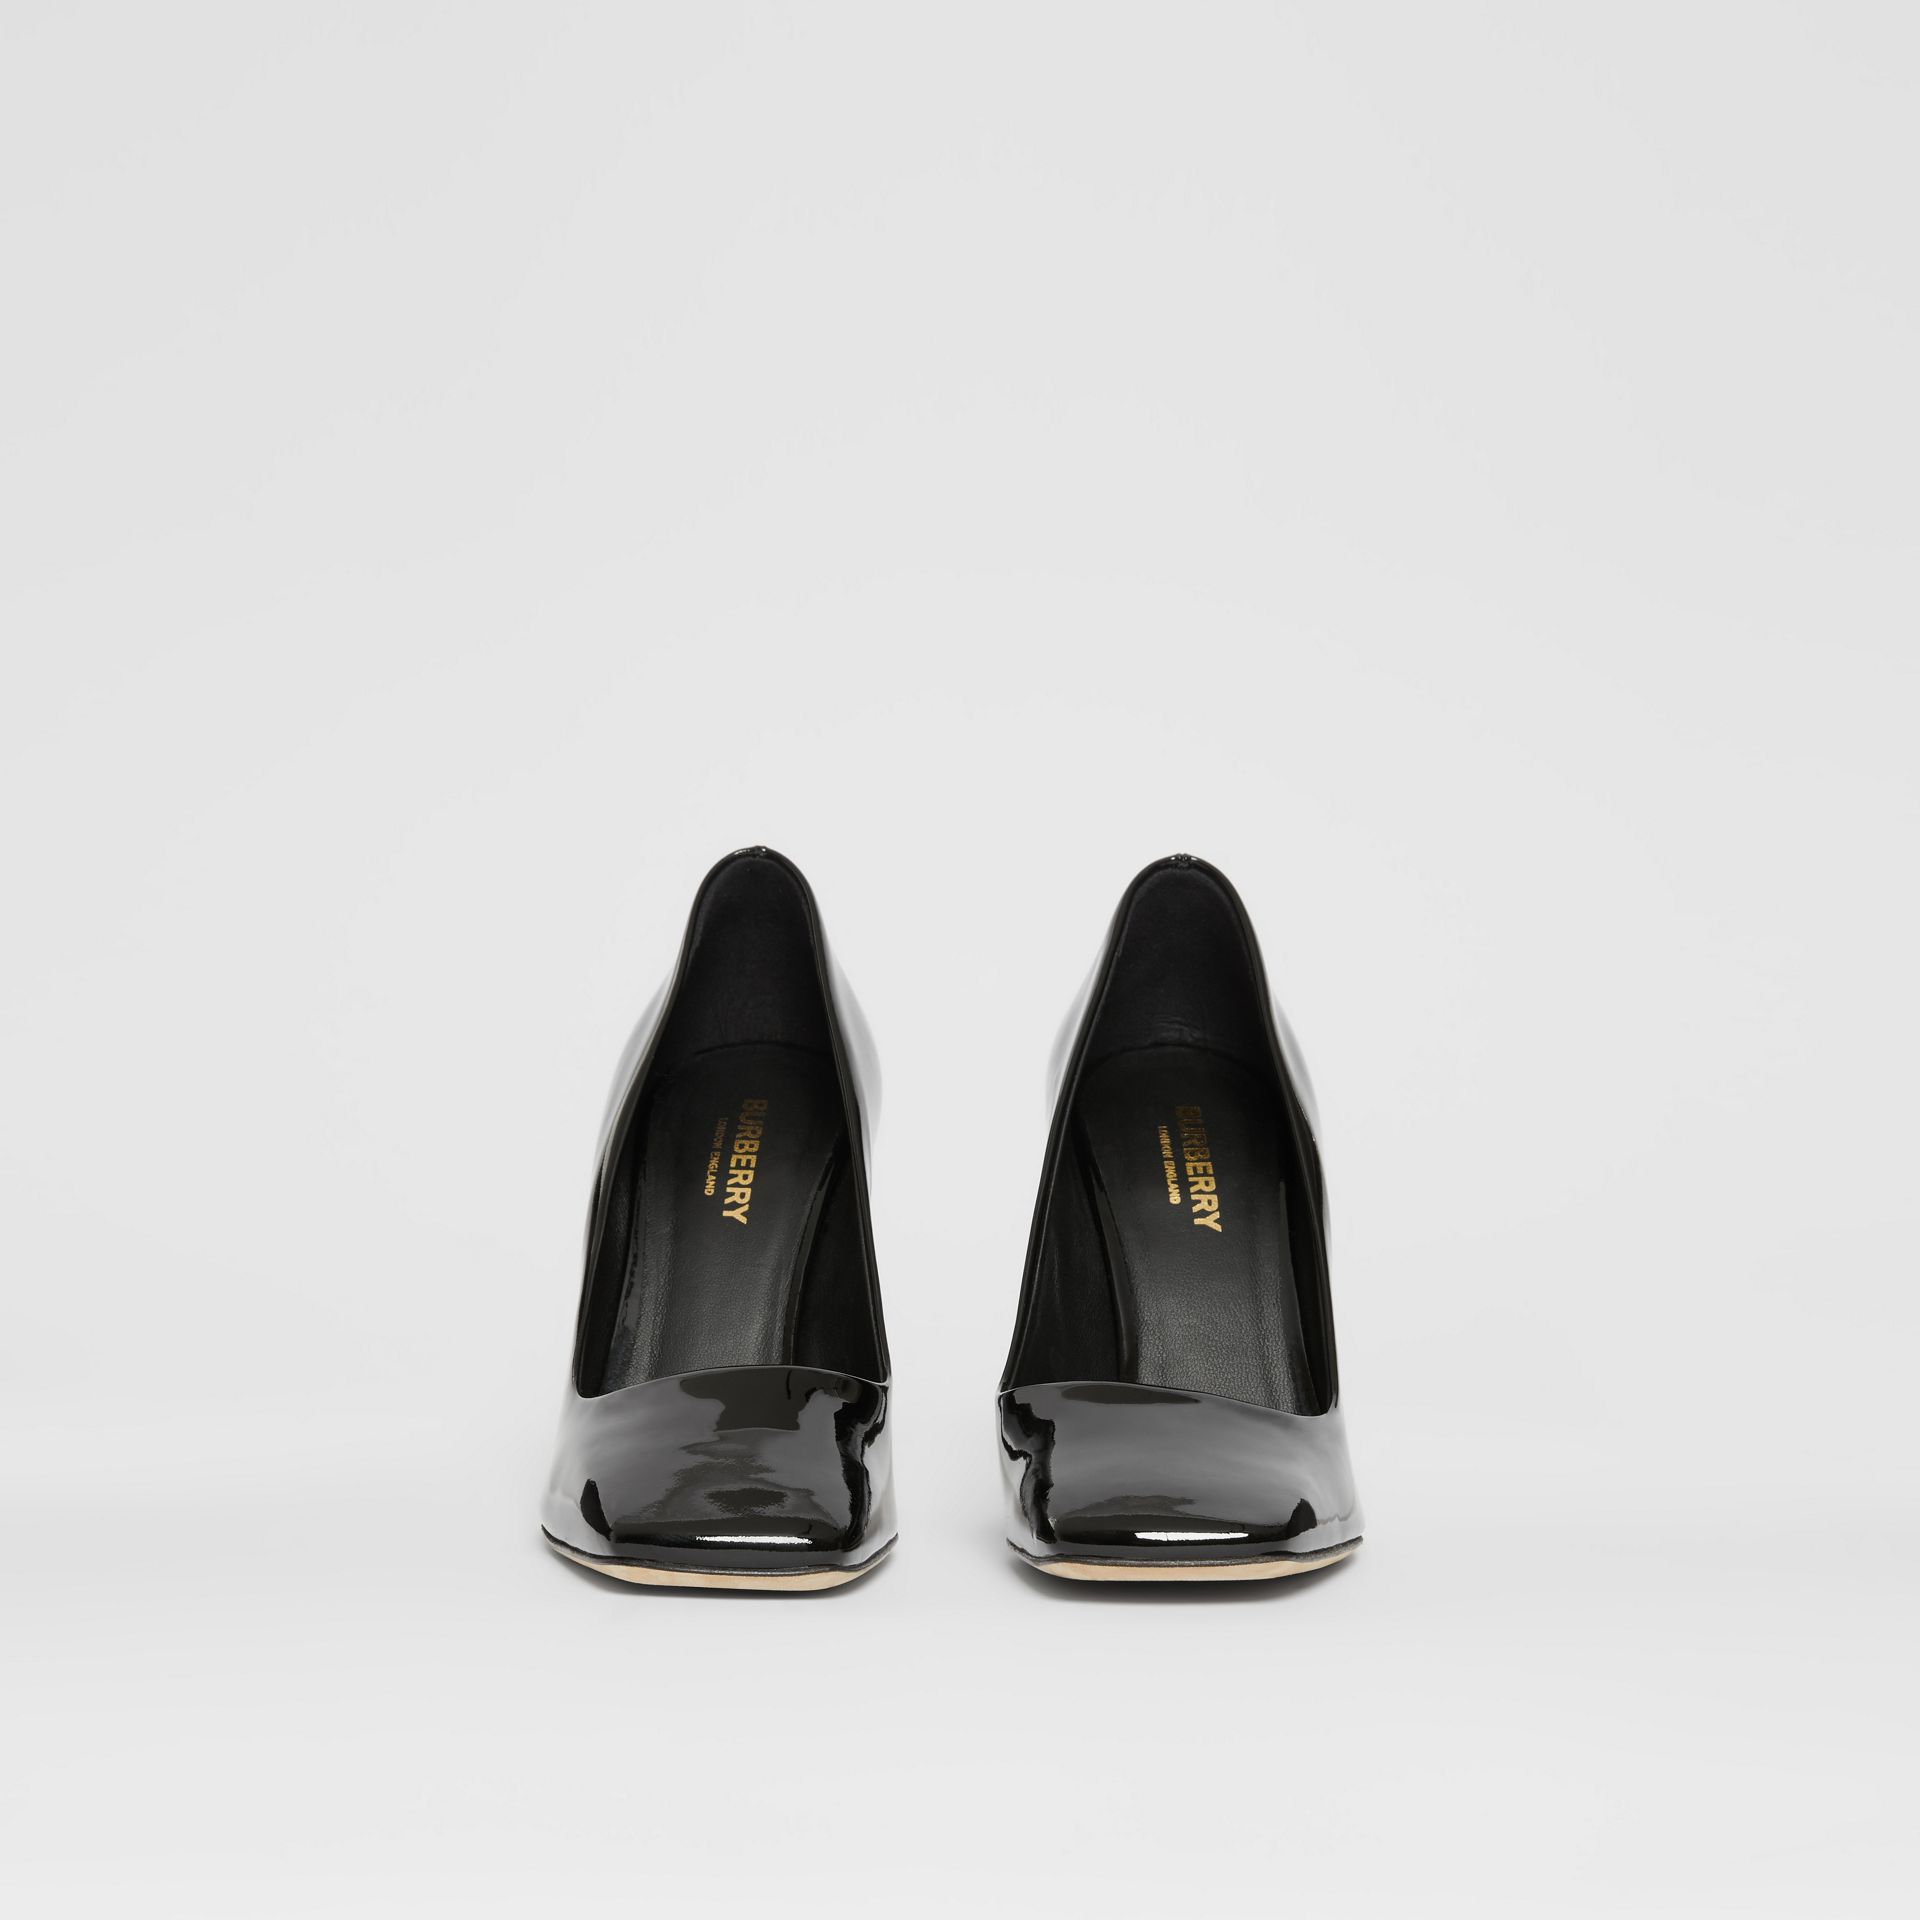 D-ring Detail Patent Leather Square-toe Pumps in Black - Women | Burberry United States - gallery image 3